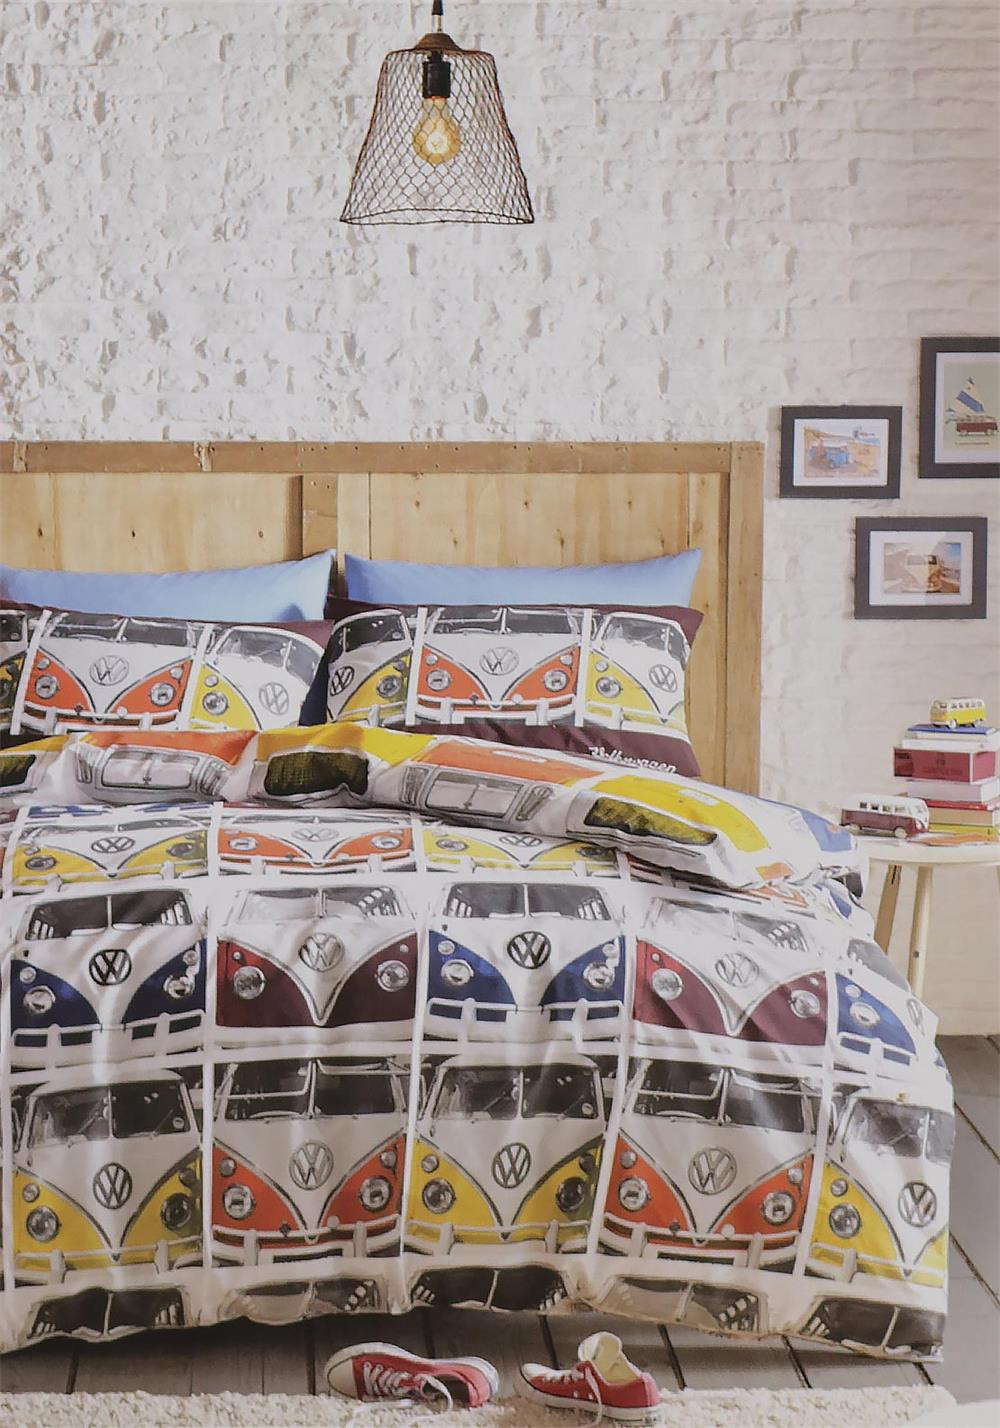 Ashley Wilde Volskwagen Vdub Duvet Cover Set, Multi-Coloured